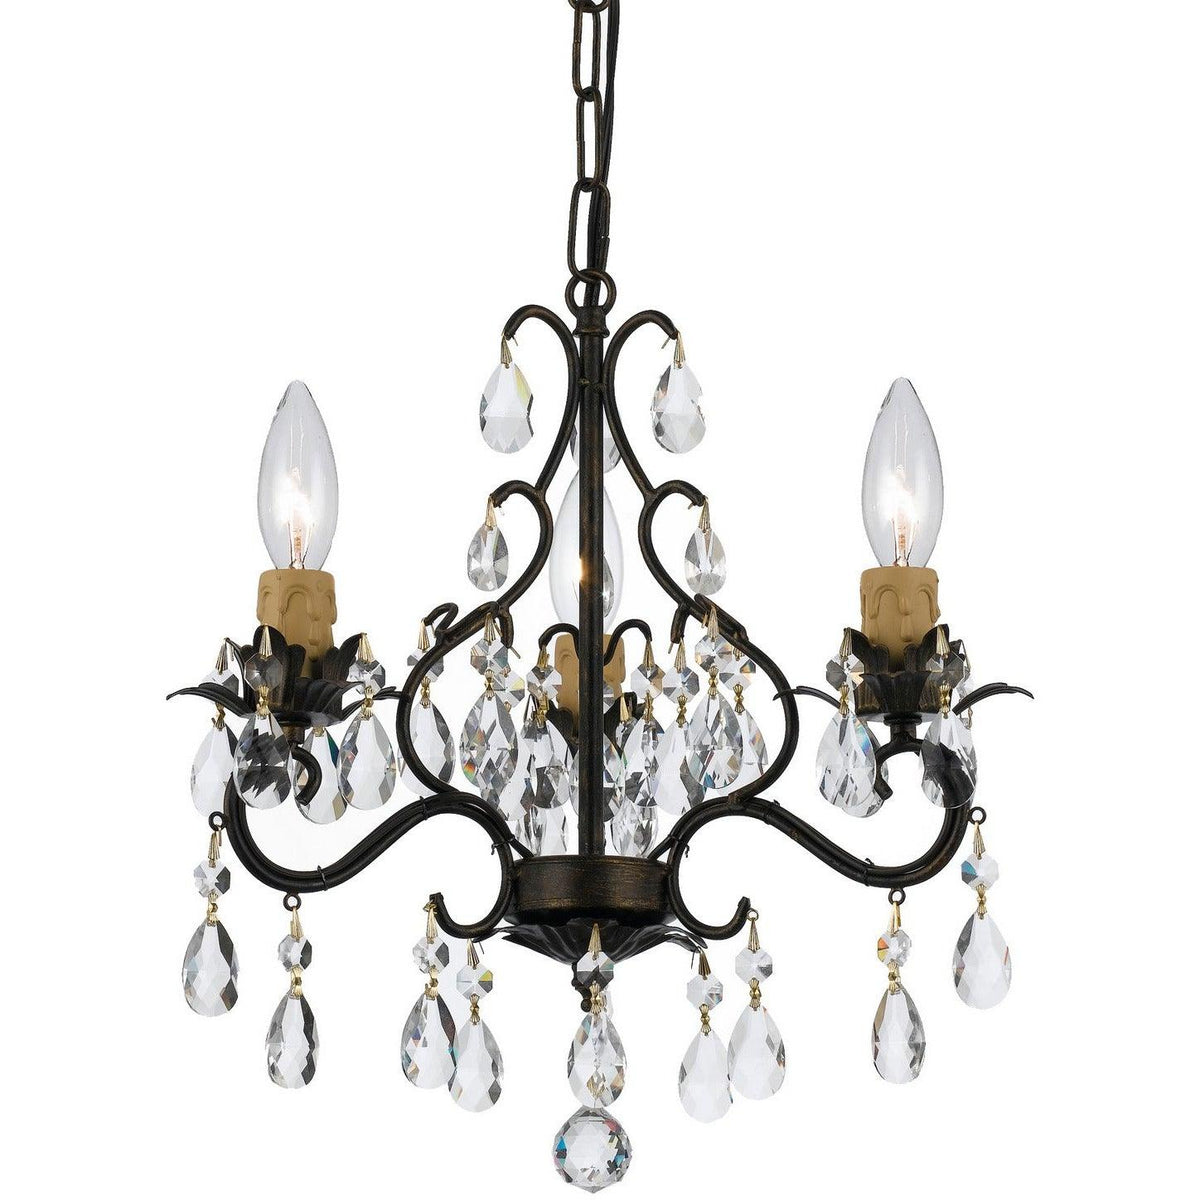 Crystorama - 4534-EB - Three Light Mini Chandelier - Paris Market - English Bronze